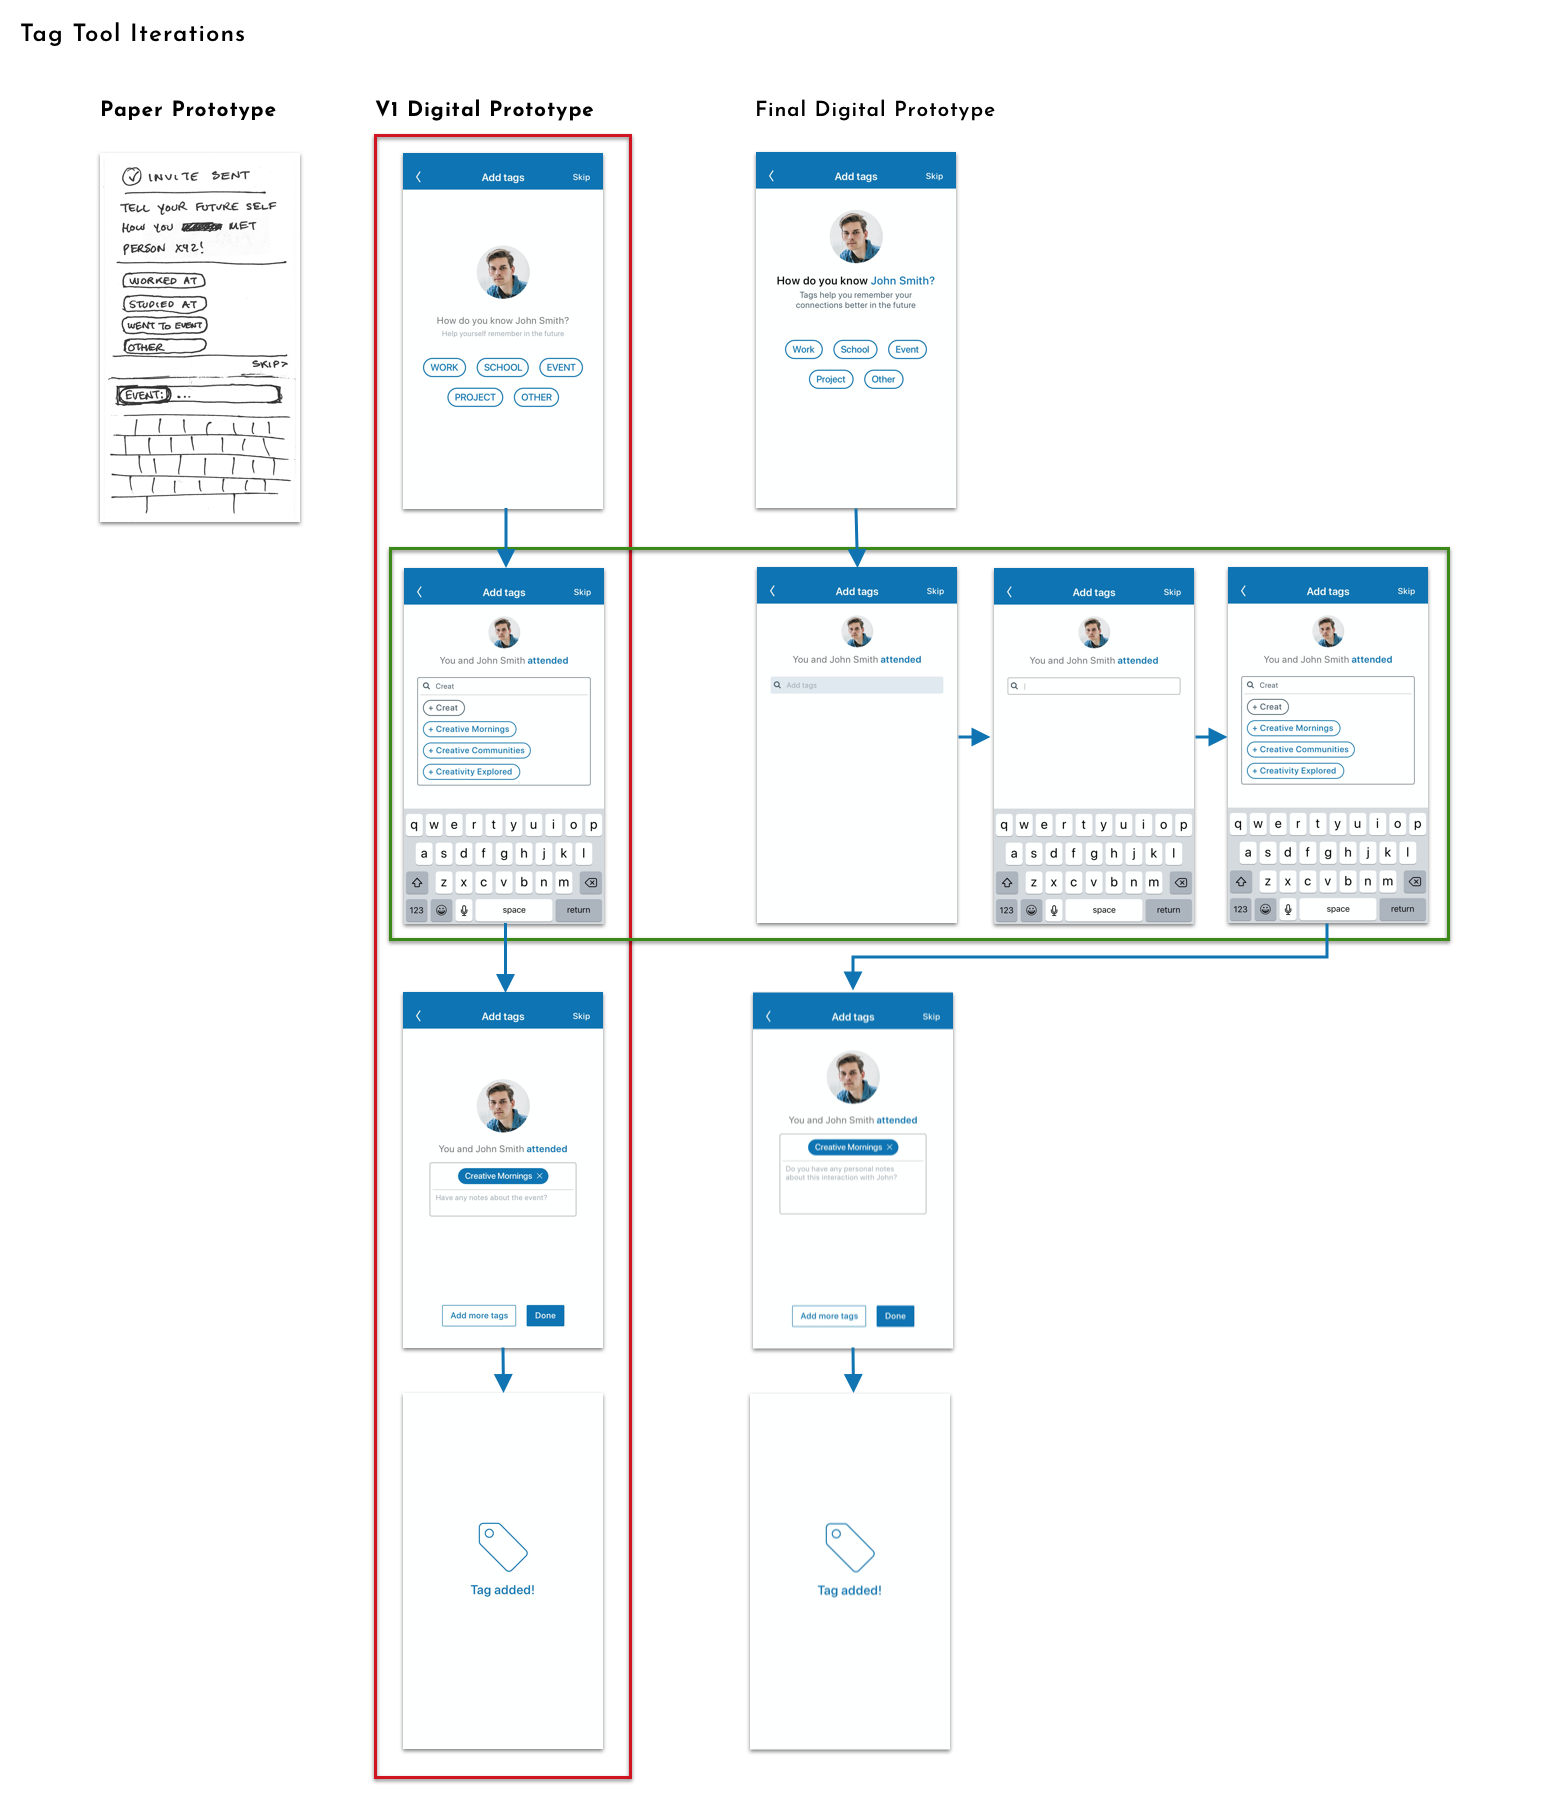 Comparison showing iterations of the Tagging Tool, from one page in the paper prototype, to 4 screens in the first draft of the digital prototype, to 7 screens in the final.